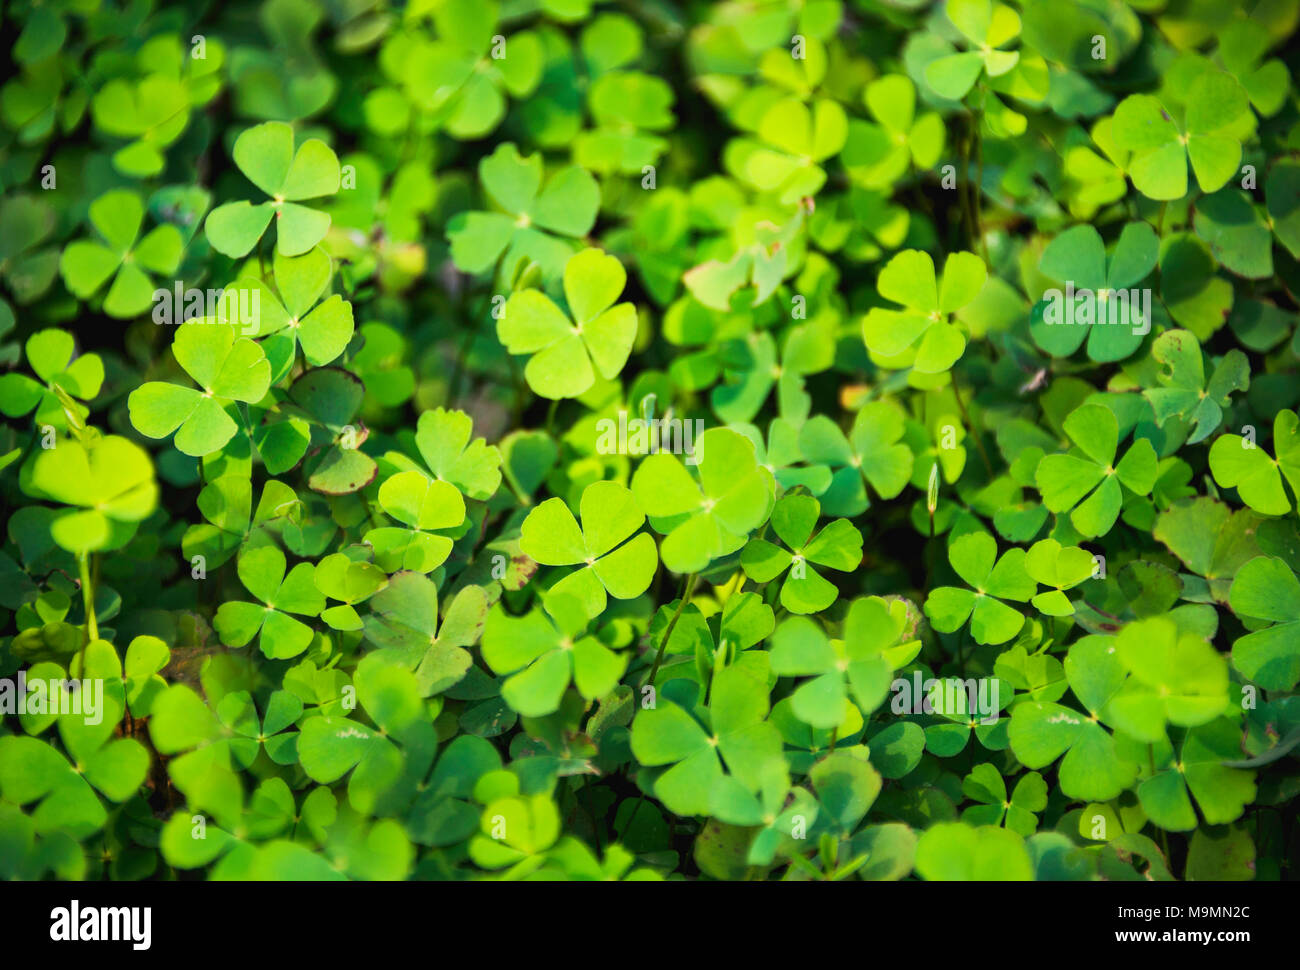 Clover Of Four Leaves Stock Photos Clover Of Four Leaves Stock